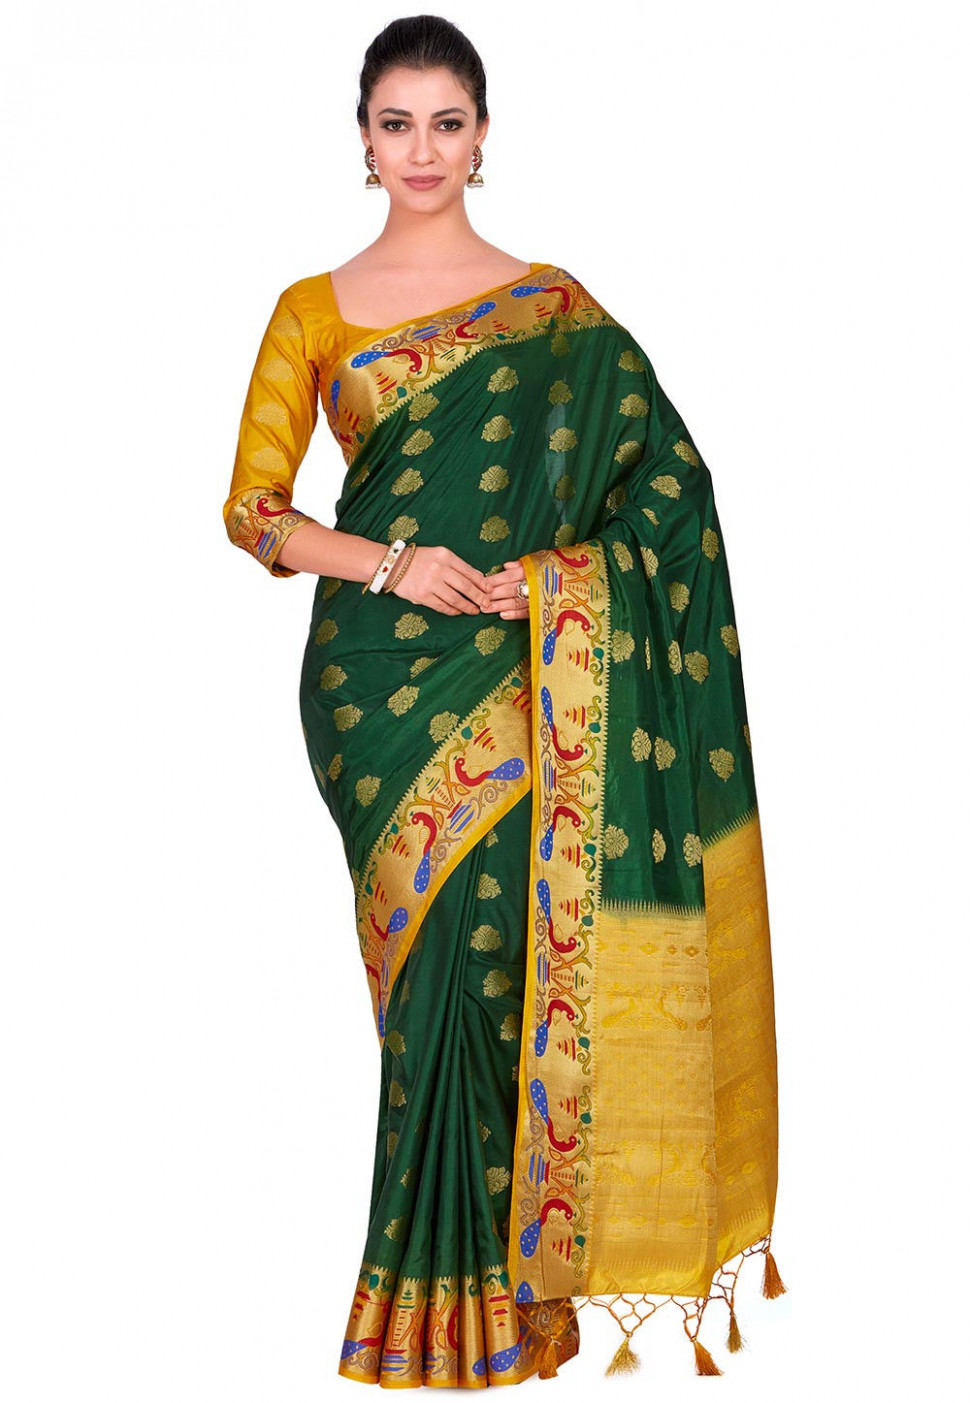 Paithani Saree in Dark Green : SNGA639 - paithani saree